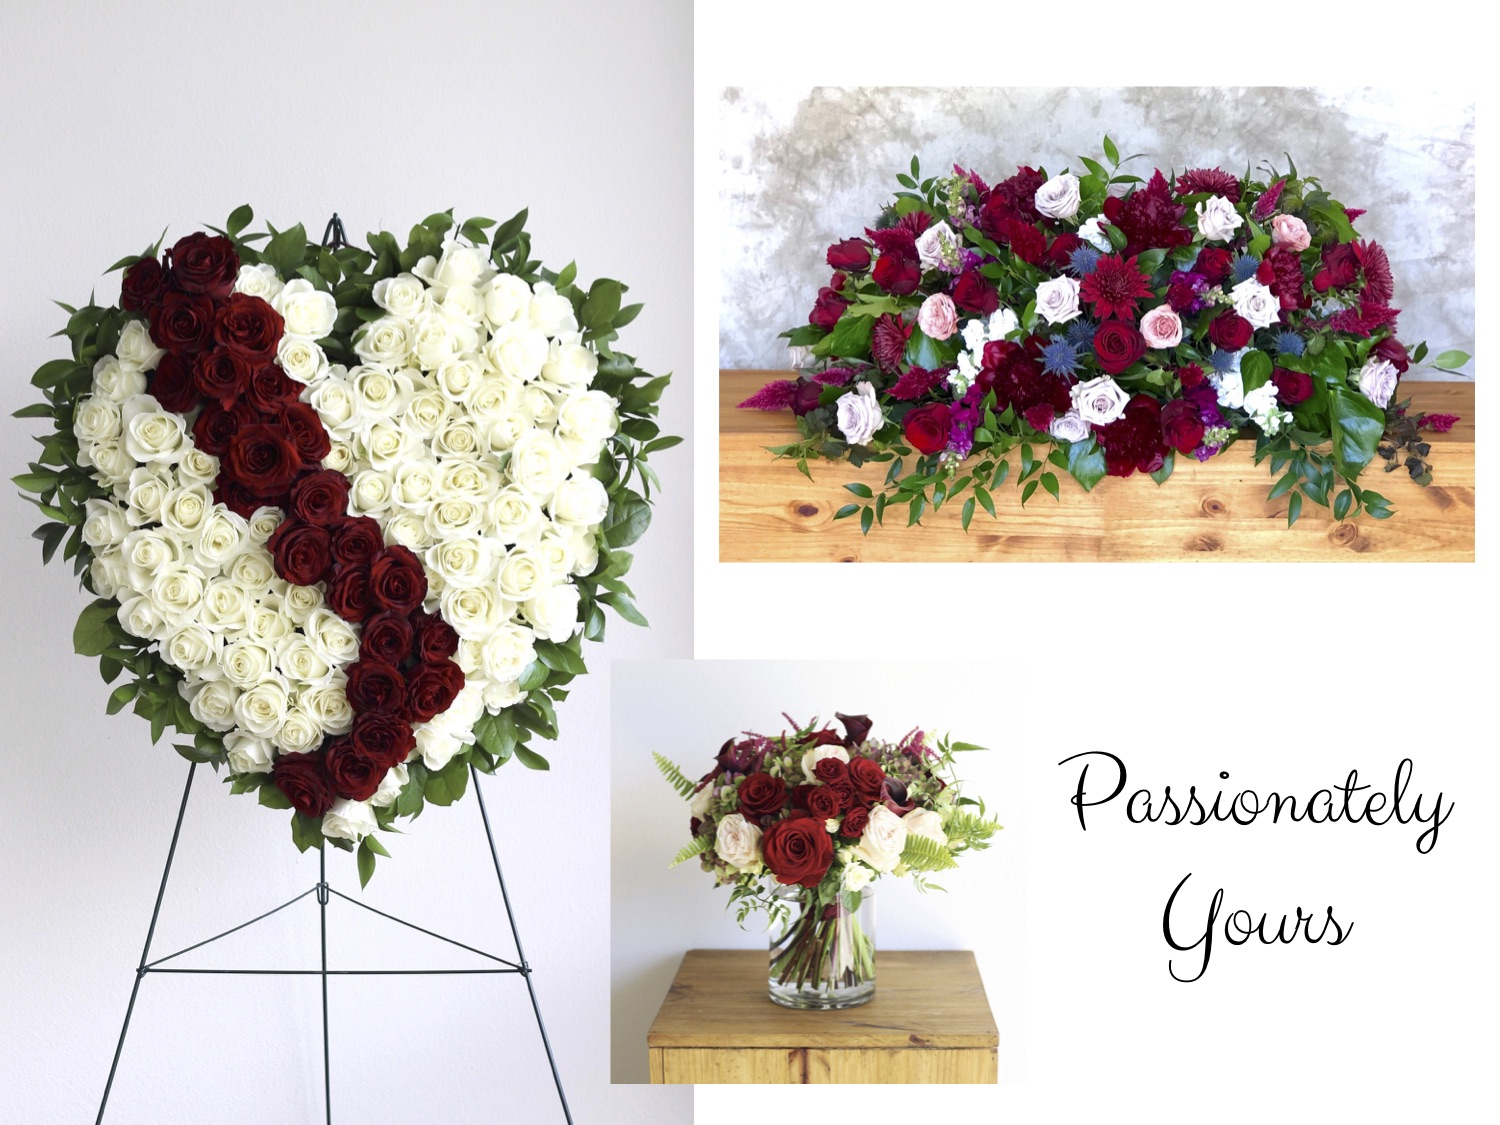 Passionately Yours Memorial Funeral Designs - The Bloom Of Time.jpg